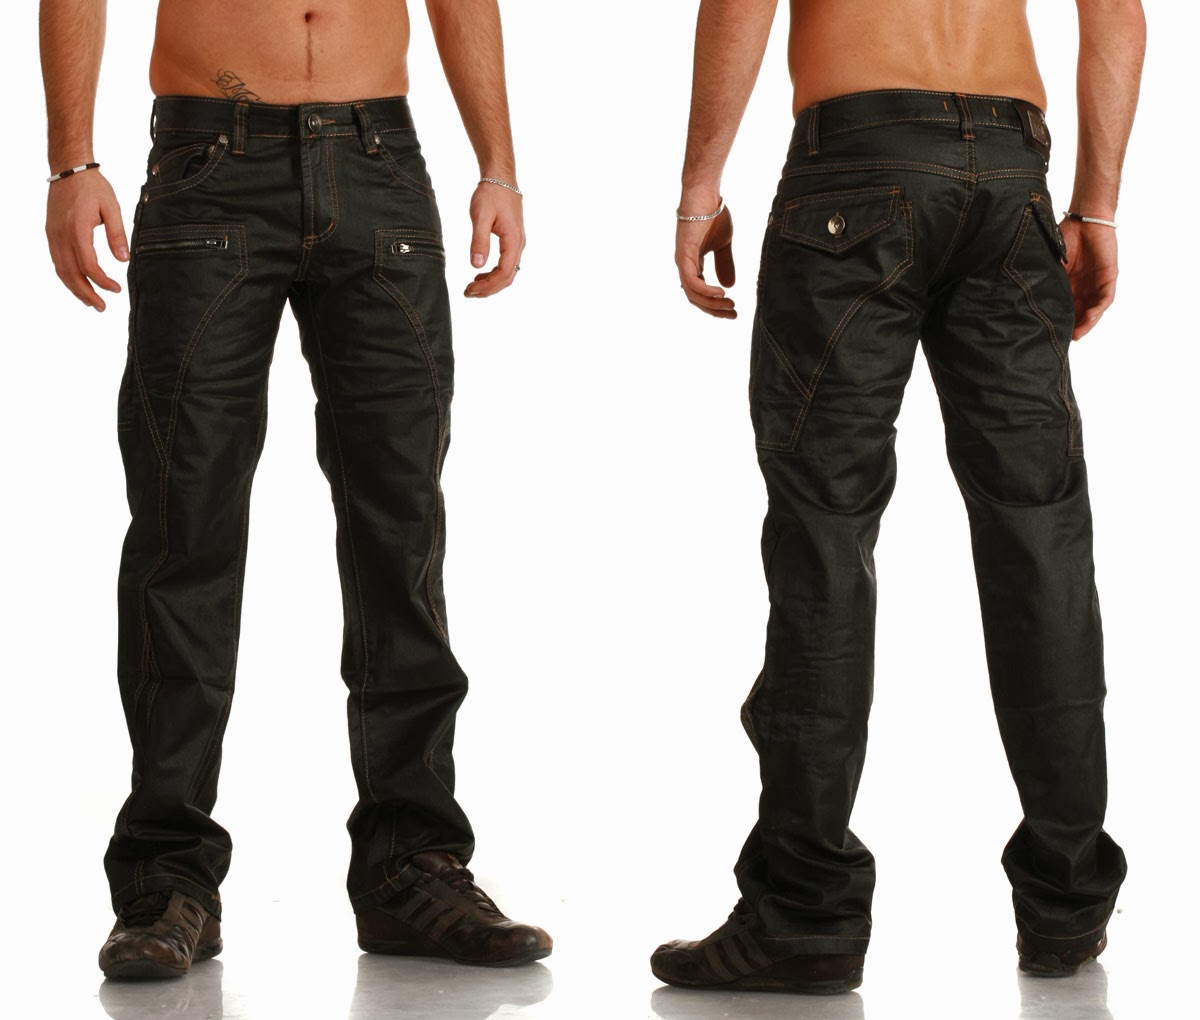 Skinny Black Jeans For Men